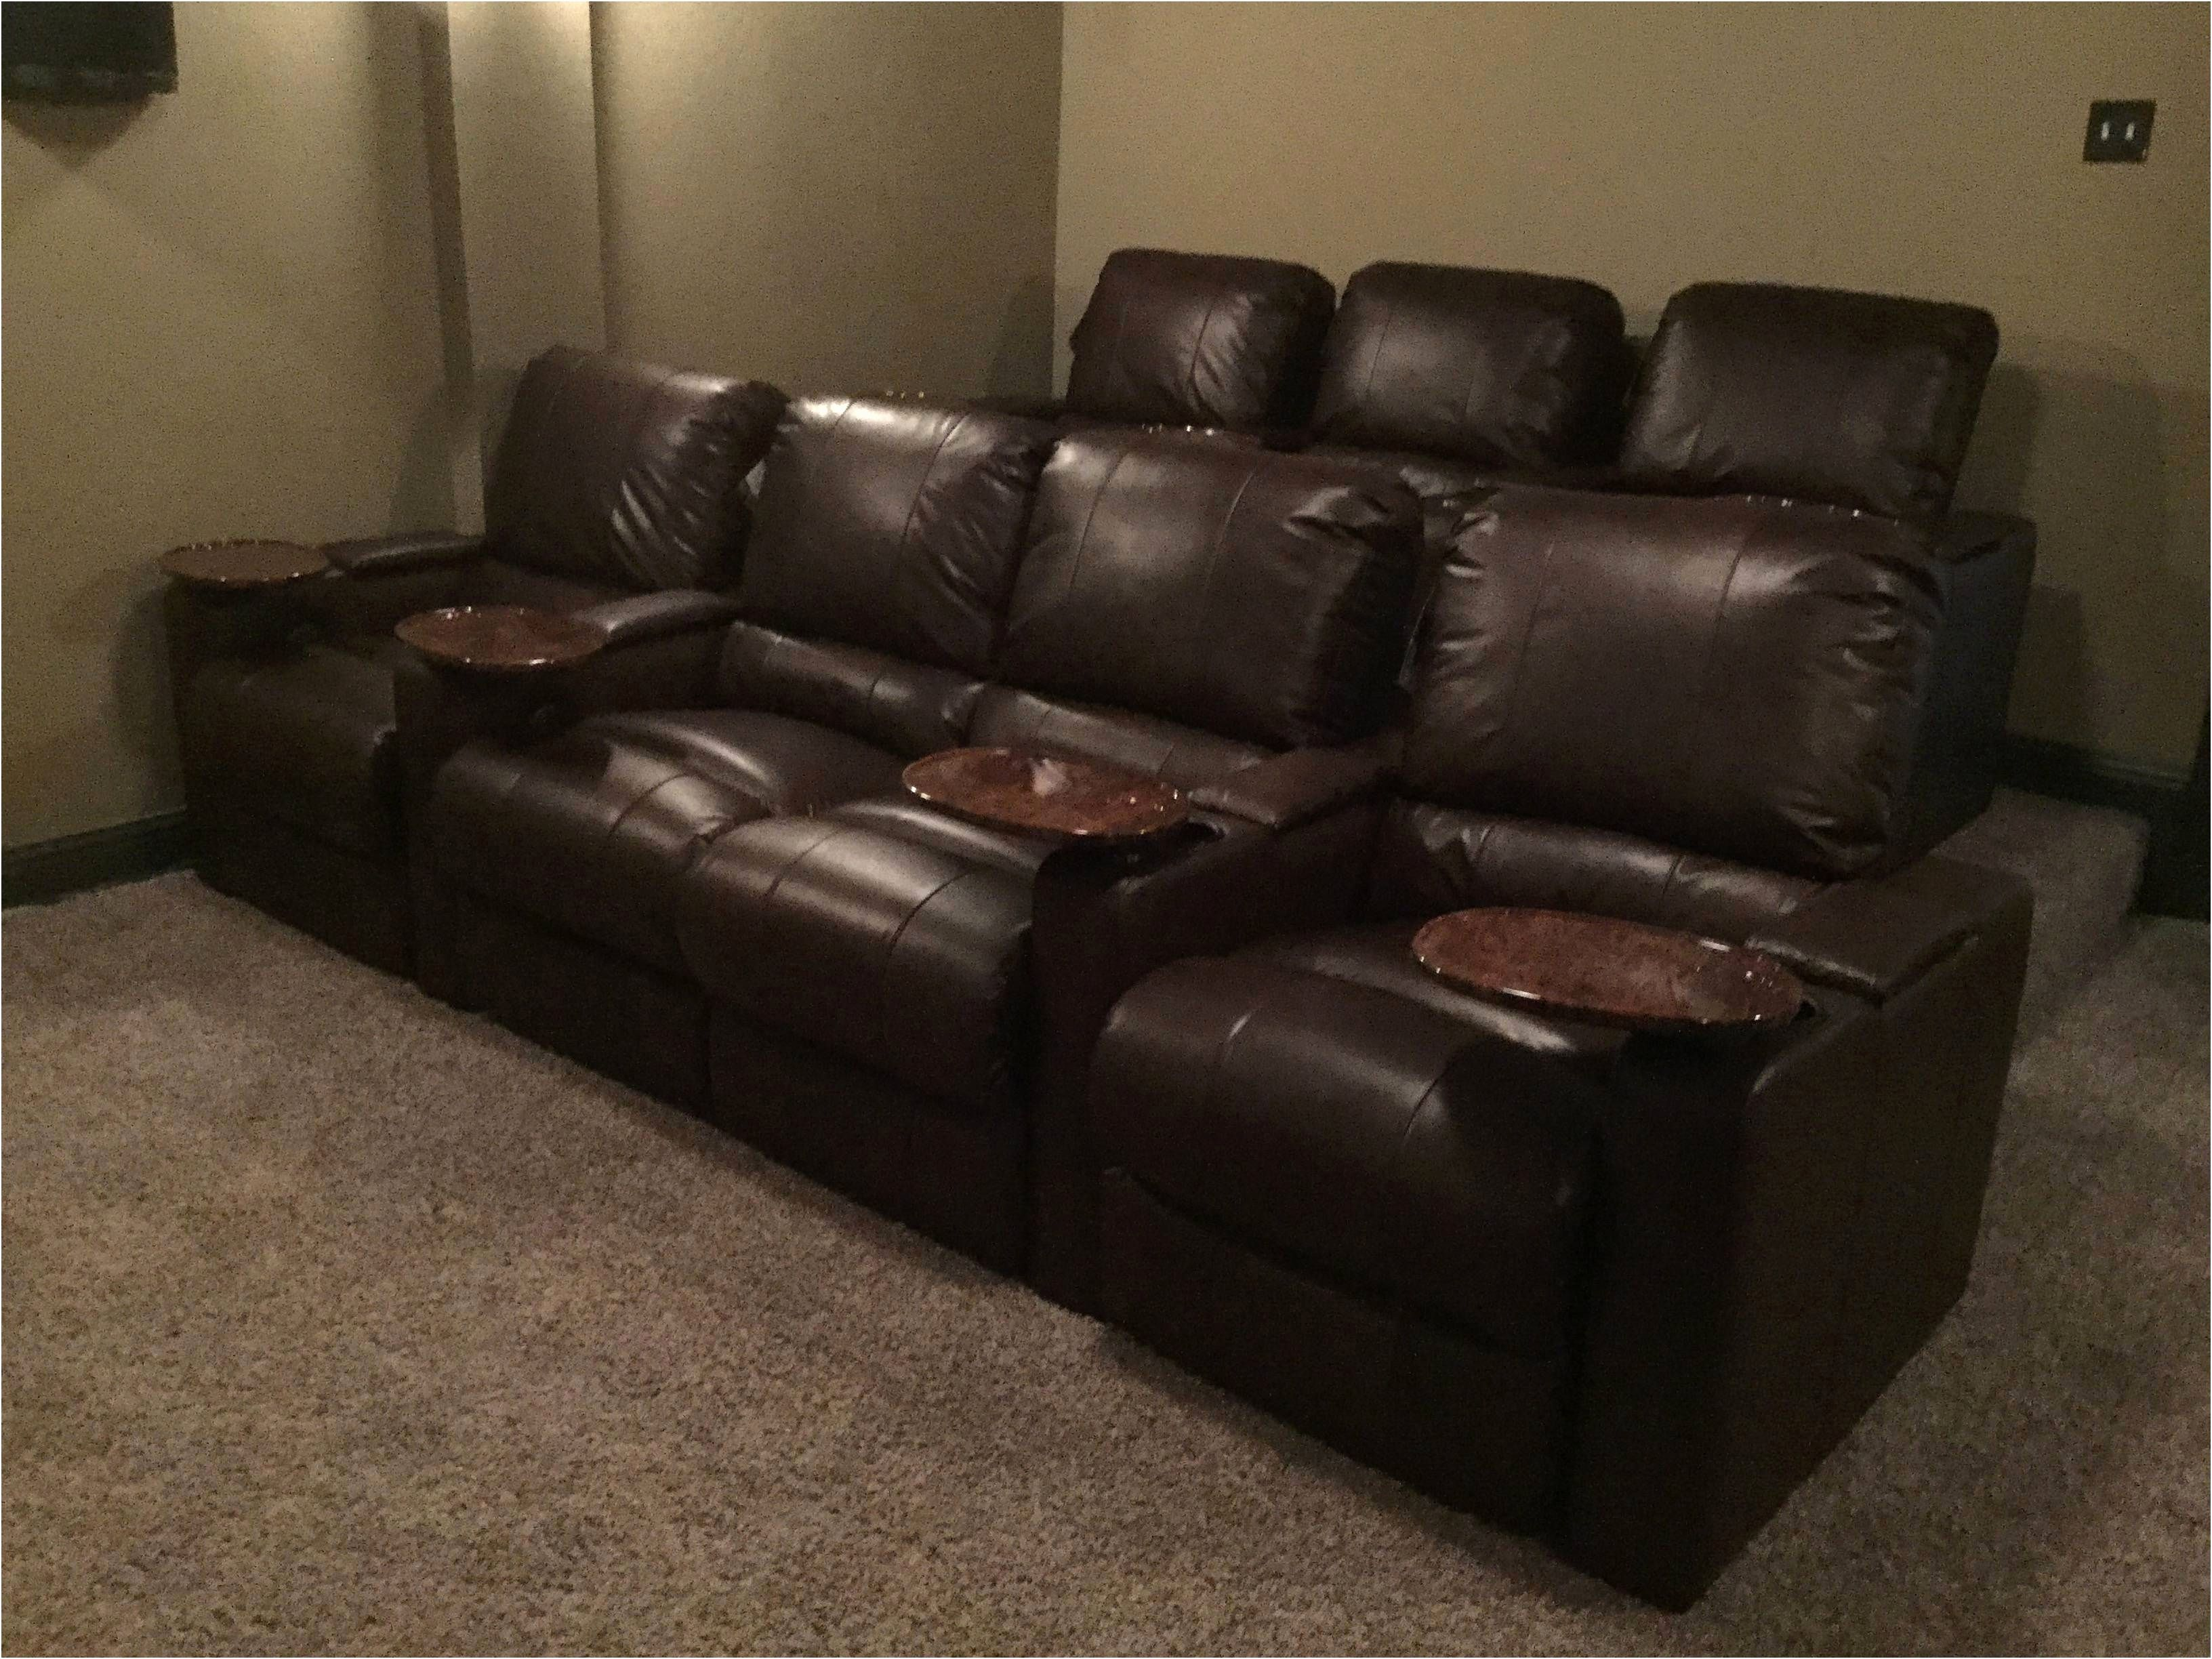 Ordinaire New Home Theater Sectional Sofa Pictures Home Theater Sectional Sofa  Awesome Gallery Theatre Sectional Sofas Mediasupload